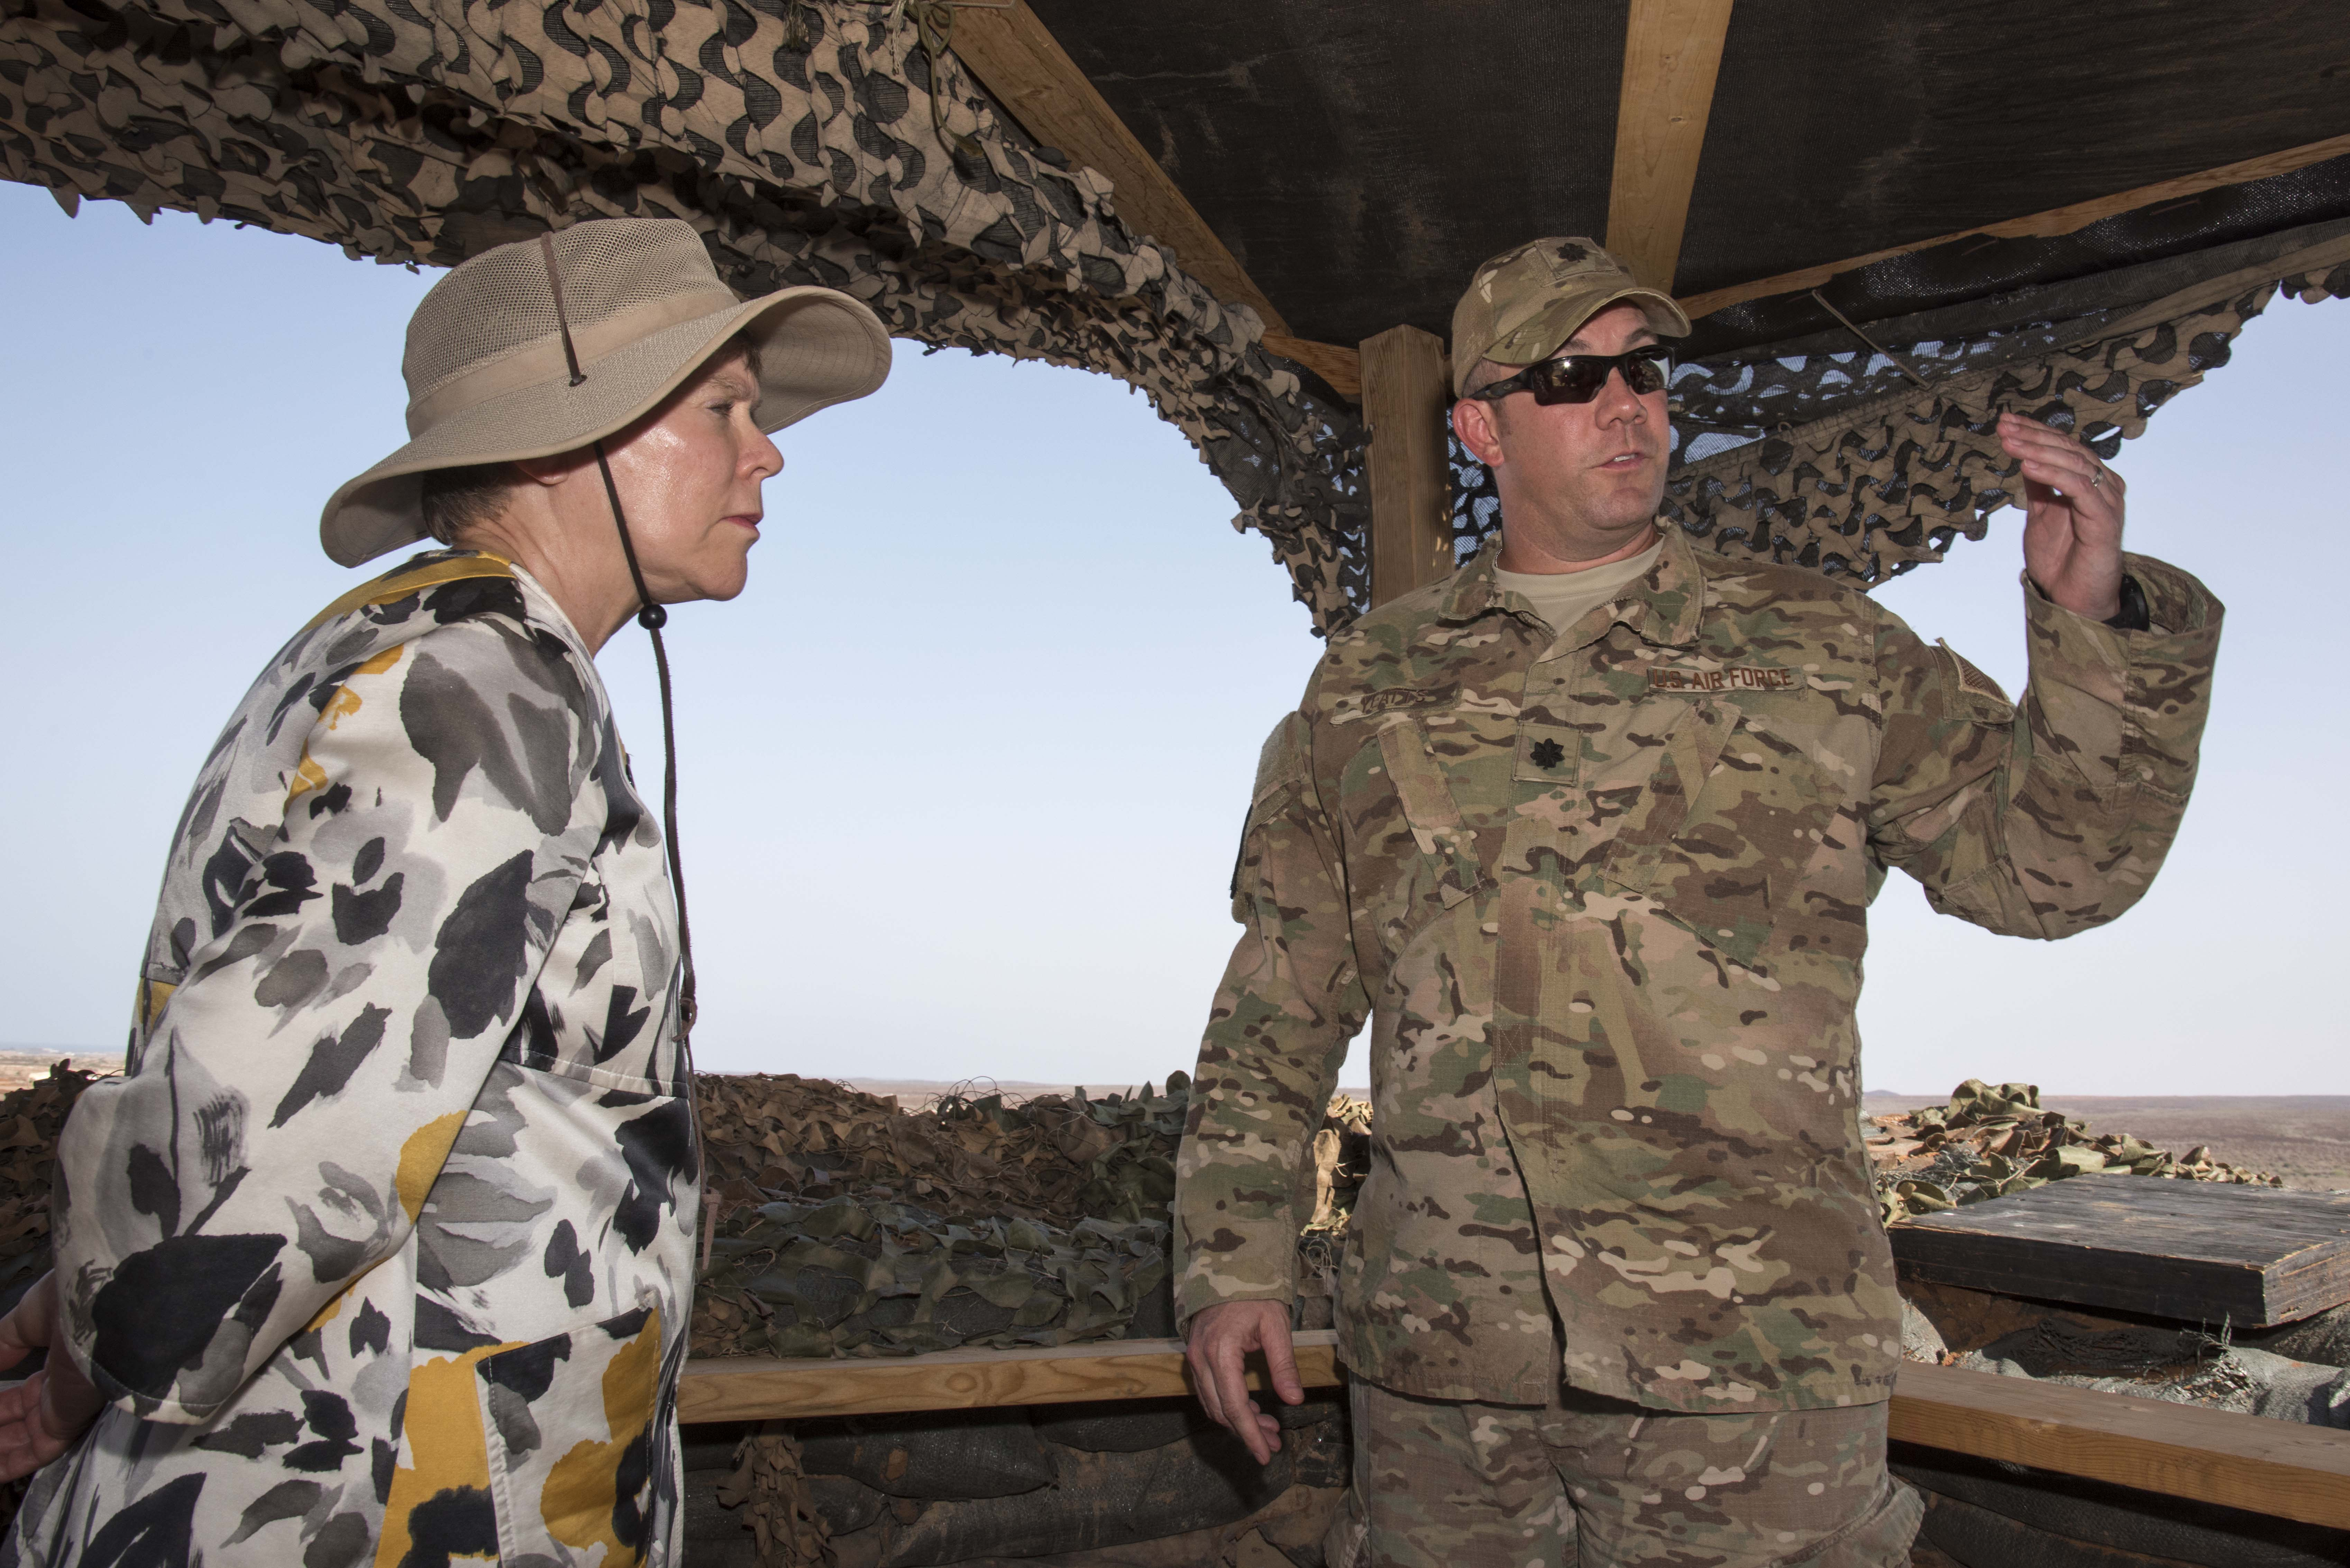 U.S. Air Force Lt. Col. Otis Yeatts, 870th Air Expeditionary Squadron commander, shows Under Secretary of State for Arms Control and International Security Rose Gottemoeller, a view from one of the perimeter posts at Chebelley Airfield, Djibouti, Nov. 14, 2015. Gottemoeller toured Chebelley and Camp Lemonnier as part of her orientation to the U.S. presence in Africa.  As Under Secretary, Gottemoeller advises the Secretary of State on arms control, nonproliferation and disarmament.